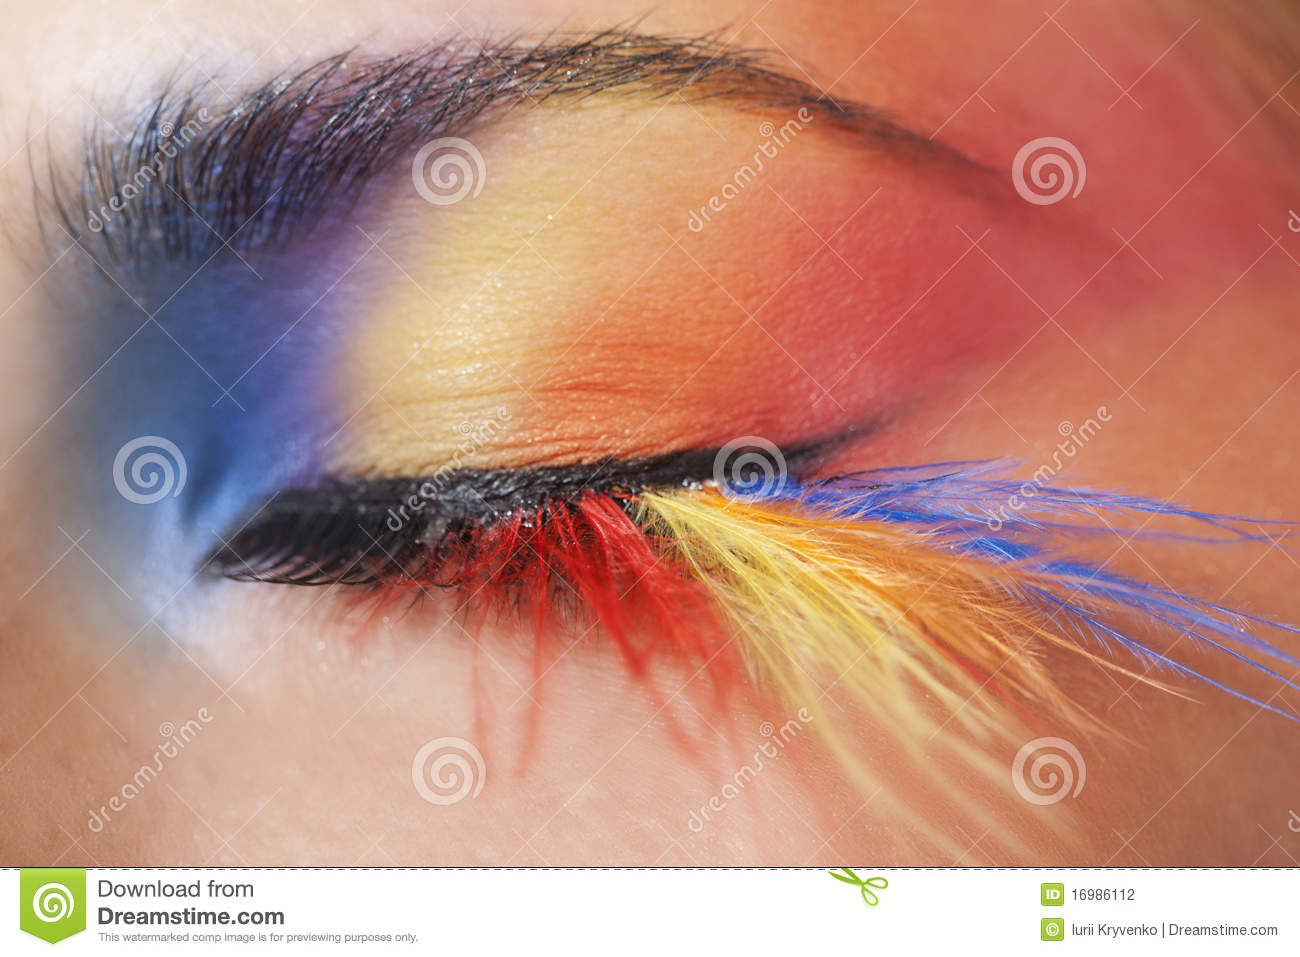 bbb22c10743 Macro eye of a woman with bright colourful eyeshadow with long feather  false eyelashes